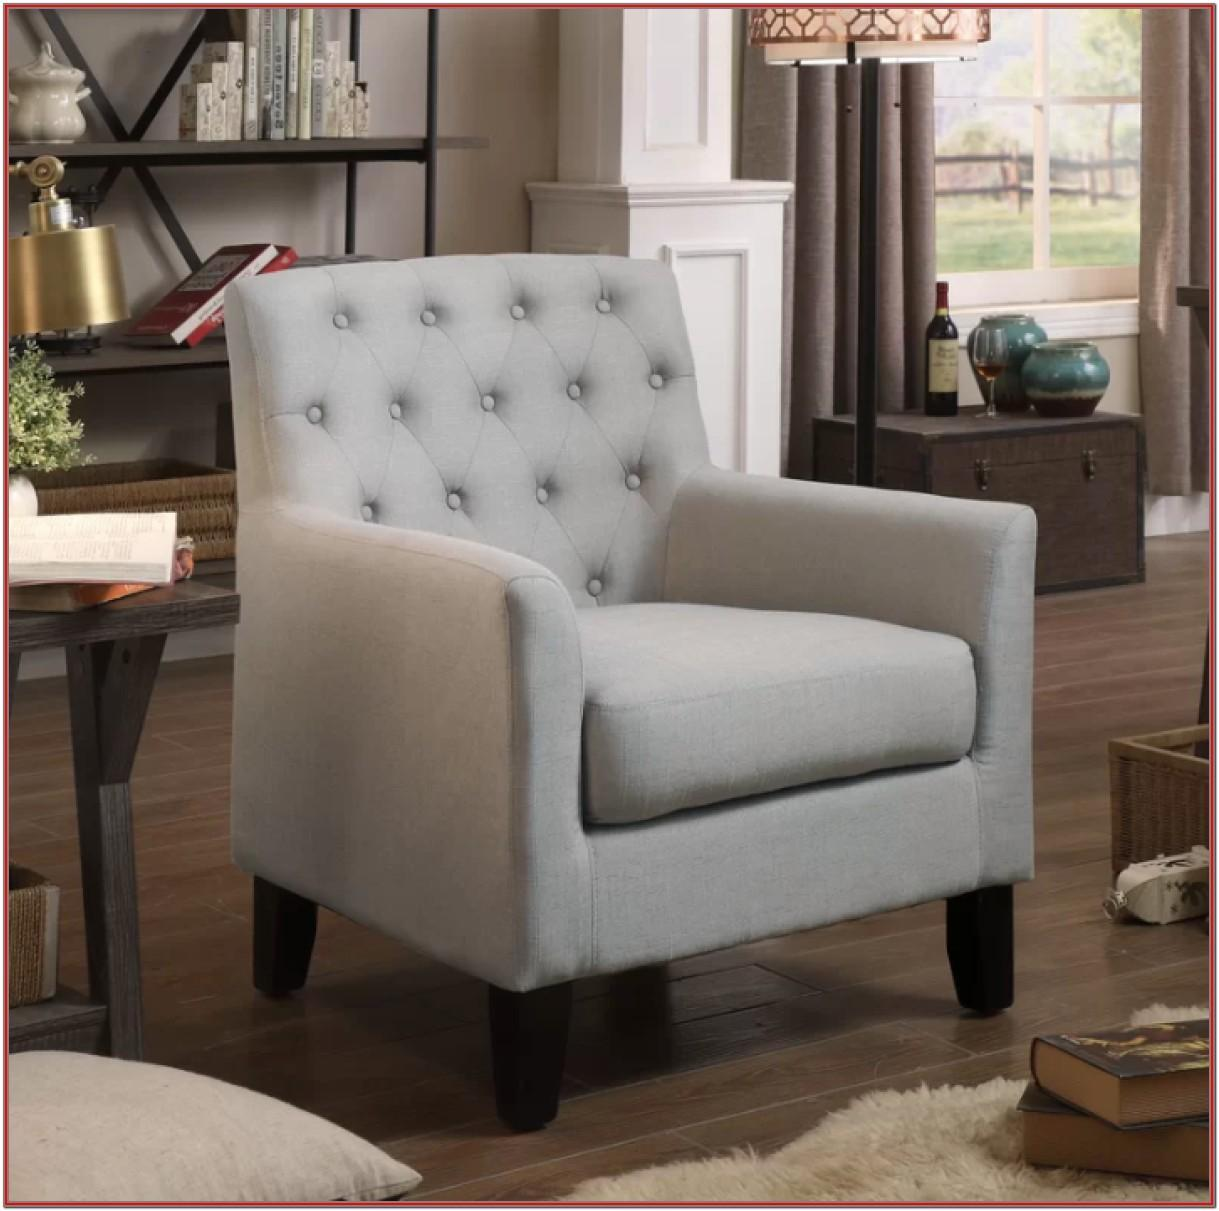 Furniture Living Room Clearance Furniture Living Room Wayfair